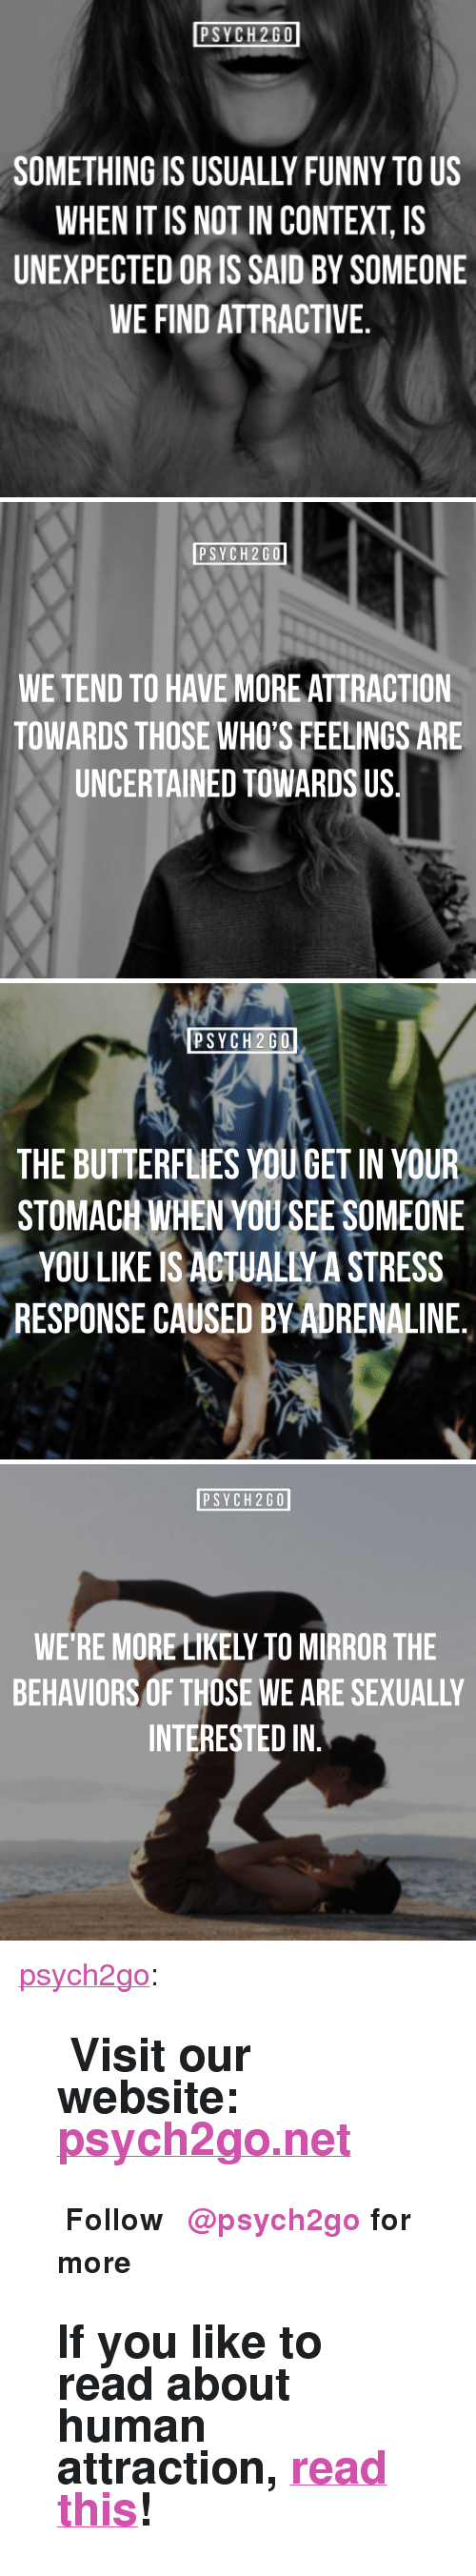 "Funny, Tumblr, and Blog: PSYCH2GO  SOMETHING IS USUALLY FUNNY TO US  WHEN IT IS NOT IN CONTEXT, IS  UNEXPECTED OR IS SAID BY SOMEONE  WE FIND ATTRACTIVE.   PSYCH2GO  WE TEND TO HAVE MORE ATTRACTION  TOWARDS THOSE WHO'S FEELINGS ARE  UNCERTAINED TOWARDS US.   PSYCH2GO  THE BUTTERFLIES YOU GET IN YOUR  STOMACH WHENYOU SEE S  OMEONE  YOU LIKE IS ACTUALIVA STRESS  RESPONSE CAUSED BVADRENALINE.   PSYCH2GO  WE'RE MORE LIKELY TO MIRROR THE  BEHAVIORS OF THOSE WE ARE SEXUALLY  INTERESTED IN <p><a href=""http://psych2go.me/post/171582502012/visit-our-website-psych2gonet-%CF%88-follow"" class=""tumblr_blog"">psych2go</a>:</p> <blockquote> <h2><b>✧ Visit our website: <a href=""https://t.umblr.com/redirect?z=https%3A%2F%2Fpsych2go.net%2F&amp;t=MTVkMTU2OTNiYjJiMzJiYjJkMjQzNmU1MTAzMDE2ZDE4ODczNTg2ZixiYnk3RVhBMw%3D%3D&amp;b=t%3APFeZpm7ivVVAoaD2c1mp5g&amp;p=http%3A%2F%2Fintrovertunites.tumblr.com%2Fpost%2F170558944980%2Fpsych2go-more-self-care-articles-here-share&amp;m=1"">psych2go.net</a> <b> ✧</b></b></h2> <p><b>Ψ Follow <a>@psych2go</a>​ for more Ψ</b></p> <h2>If you like to read about human attraction, <a href=""https://psych2go.net/10-factors-contribute-attraction/"">read this</a>!</h2> </blockquote>"